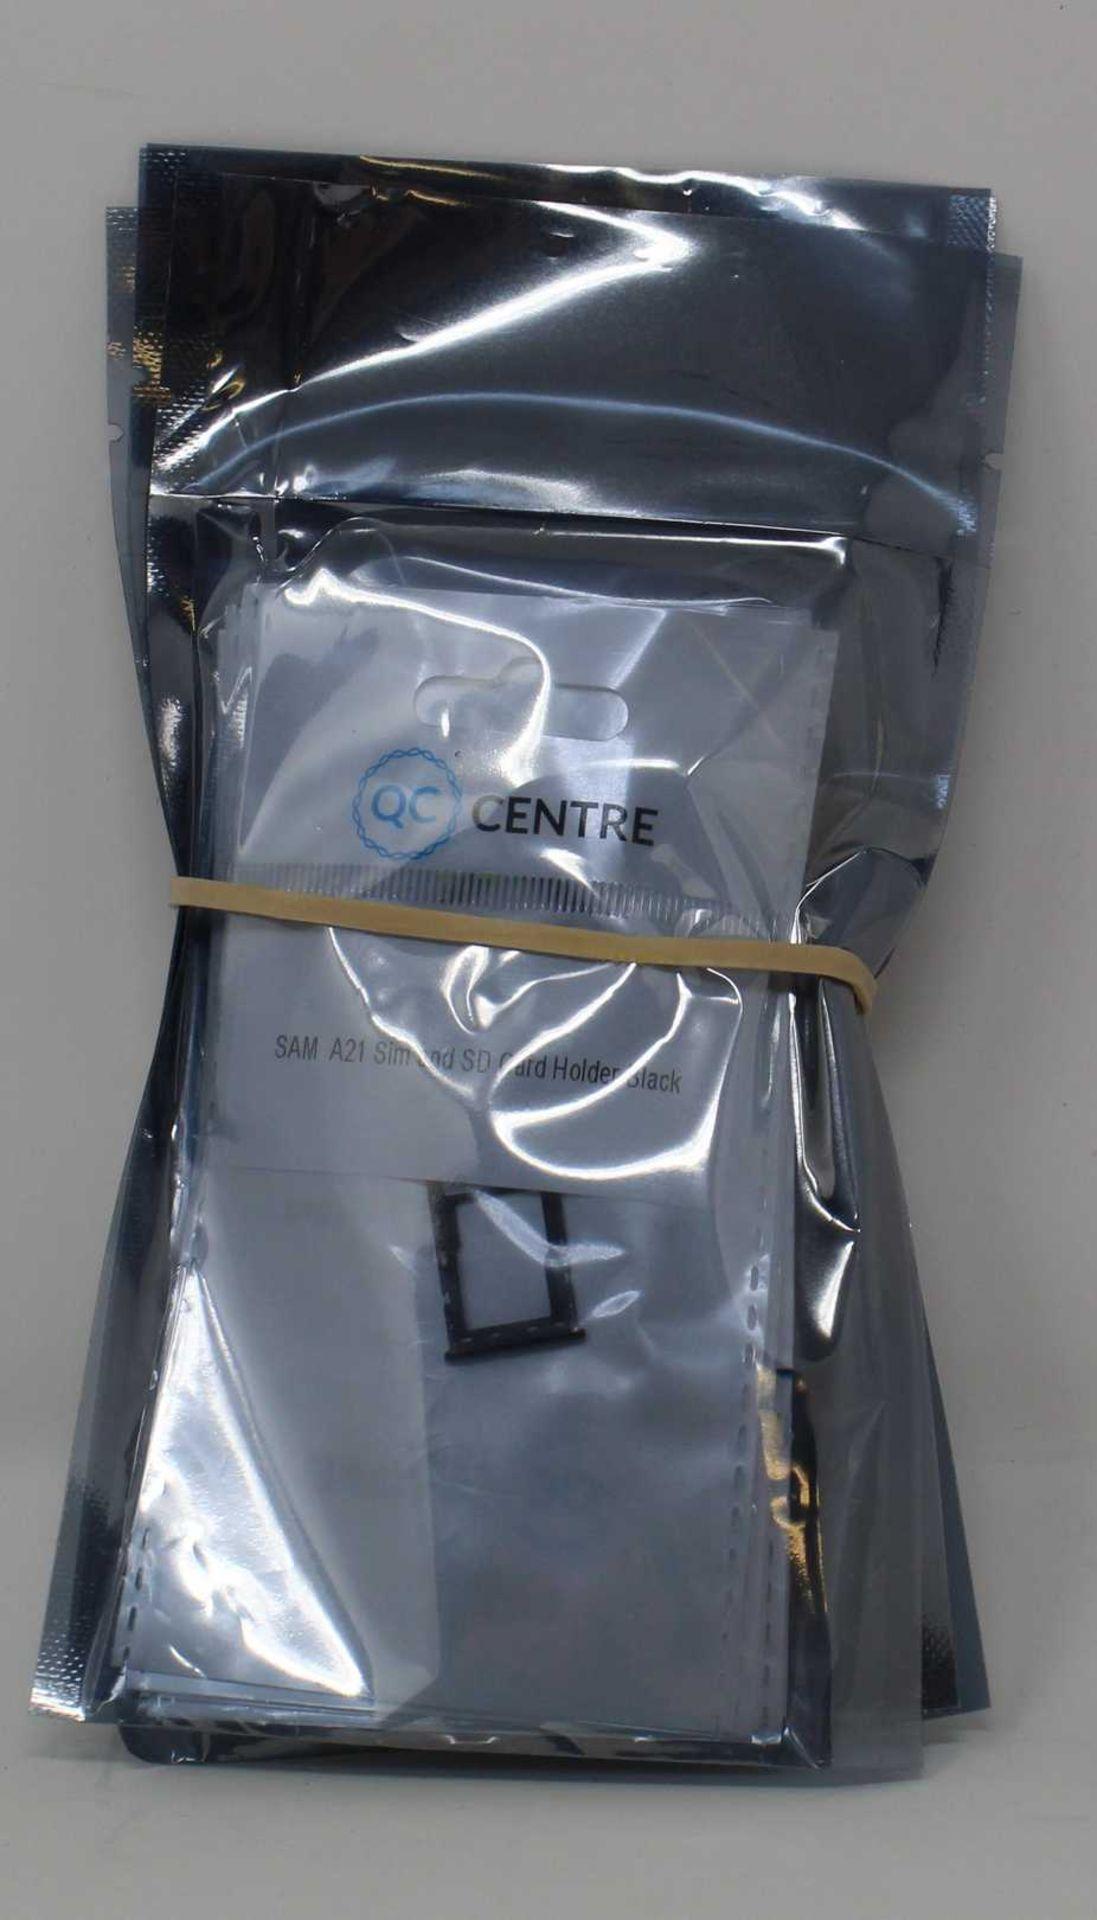 Ten as new QC Centre replacement connector flex cables for Samsung S10 Lite (Packaging sealed).